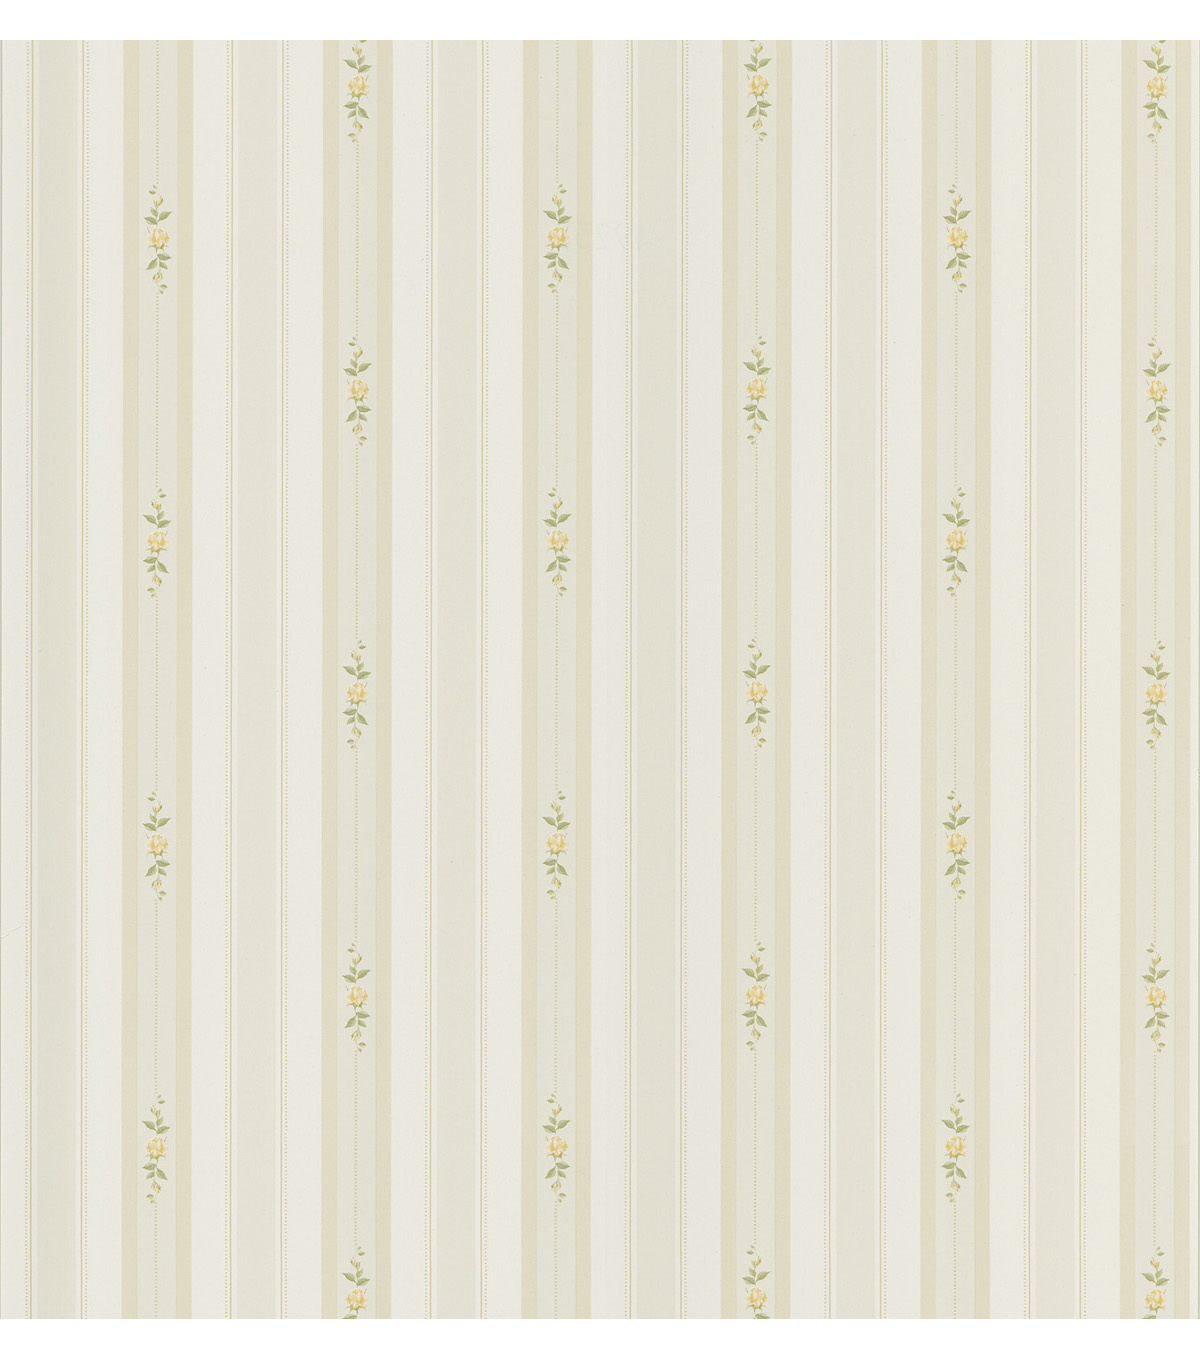 Rosebud Light Green Floral Stripe Wallpaper Sample